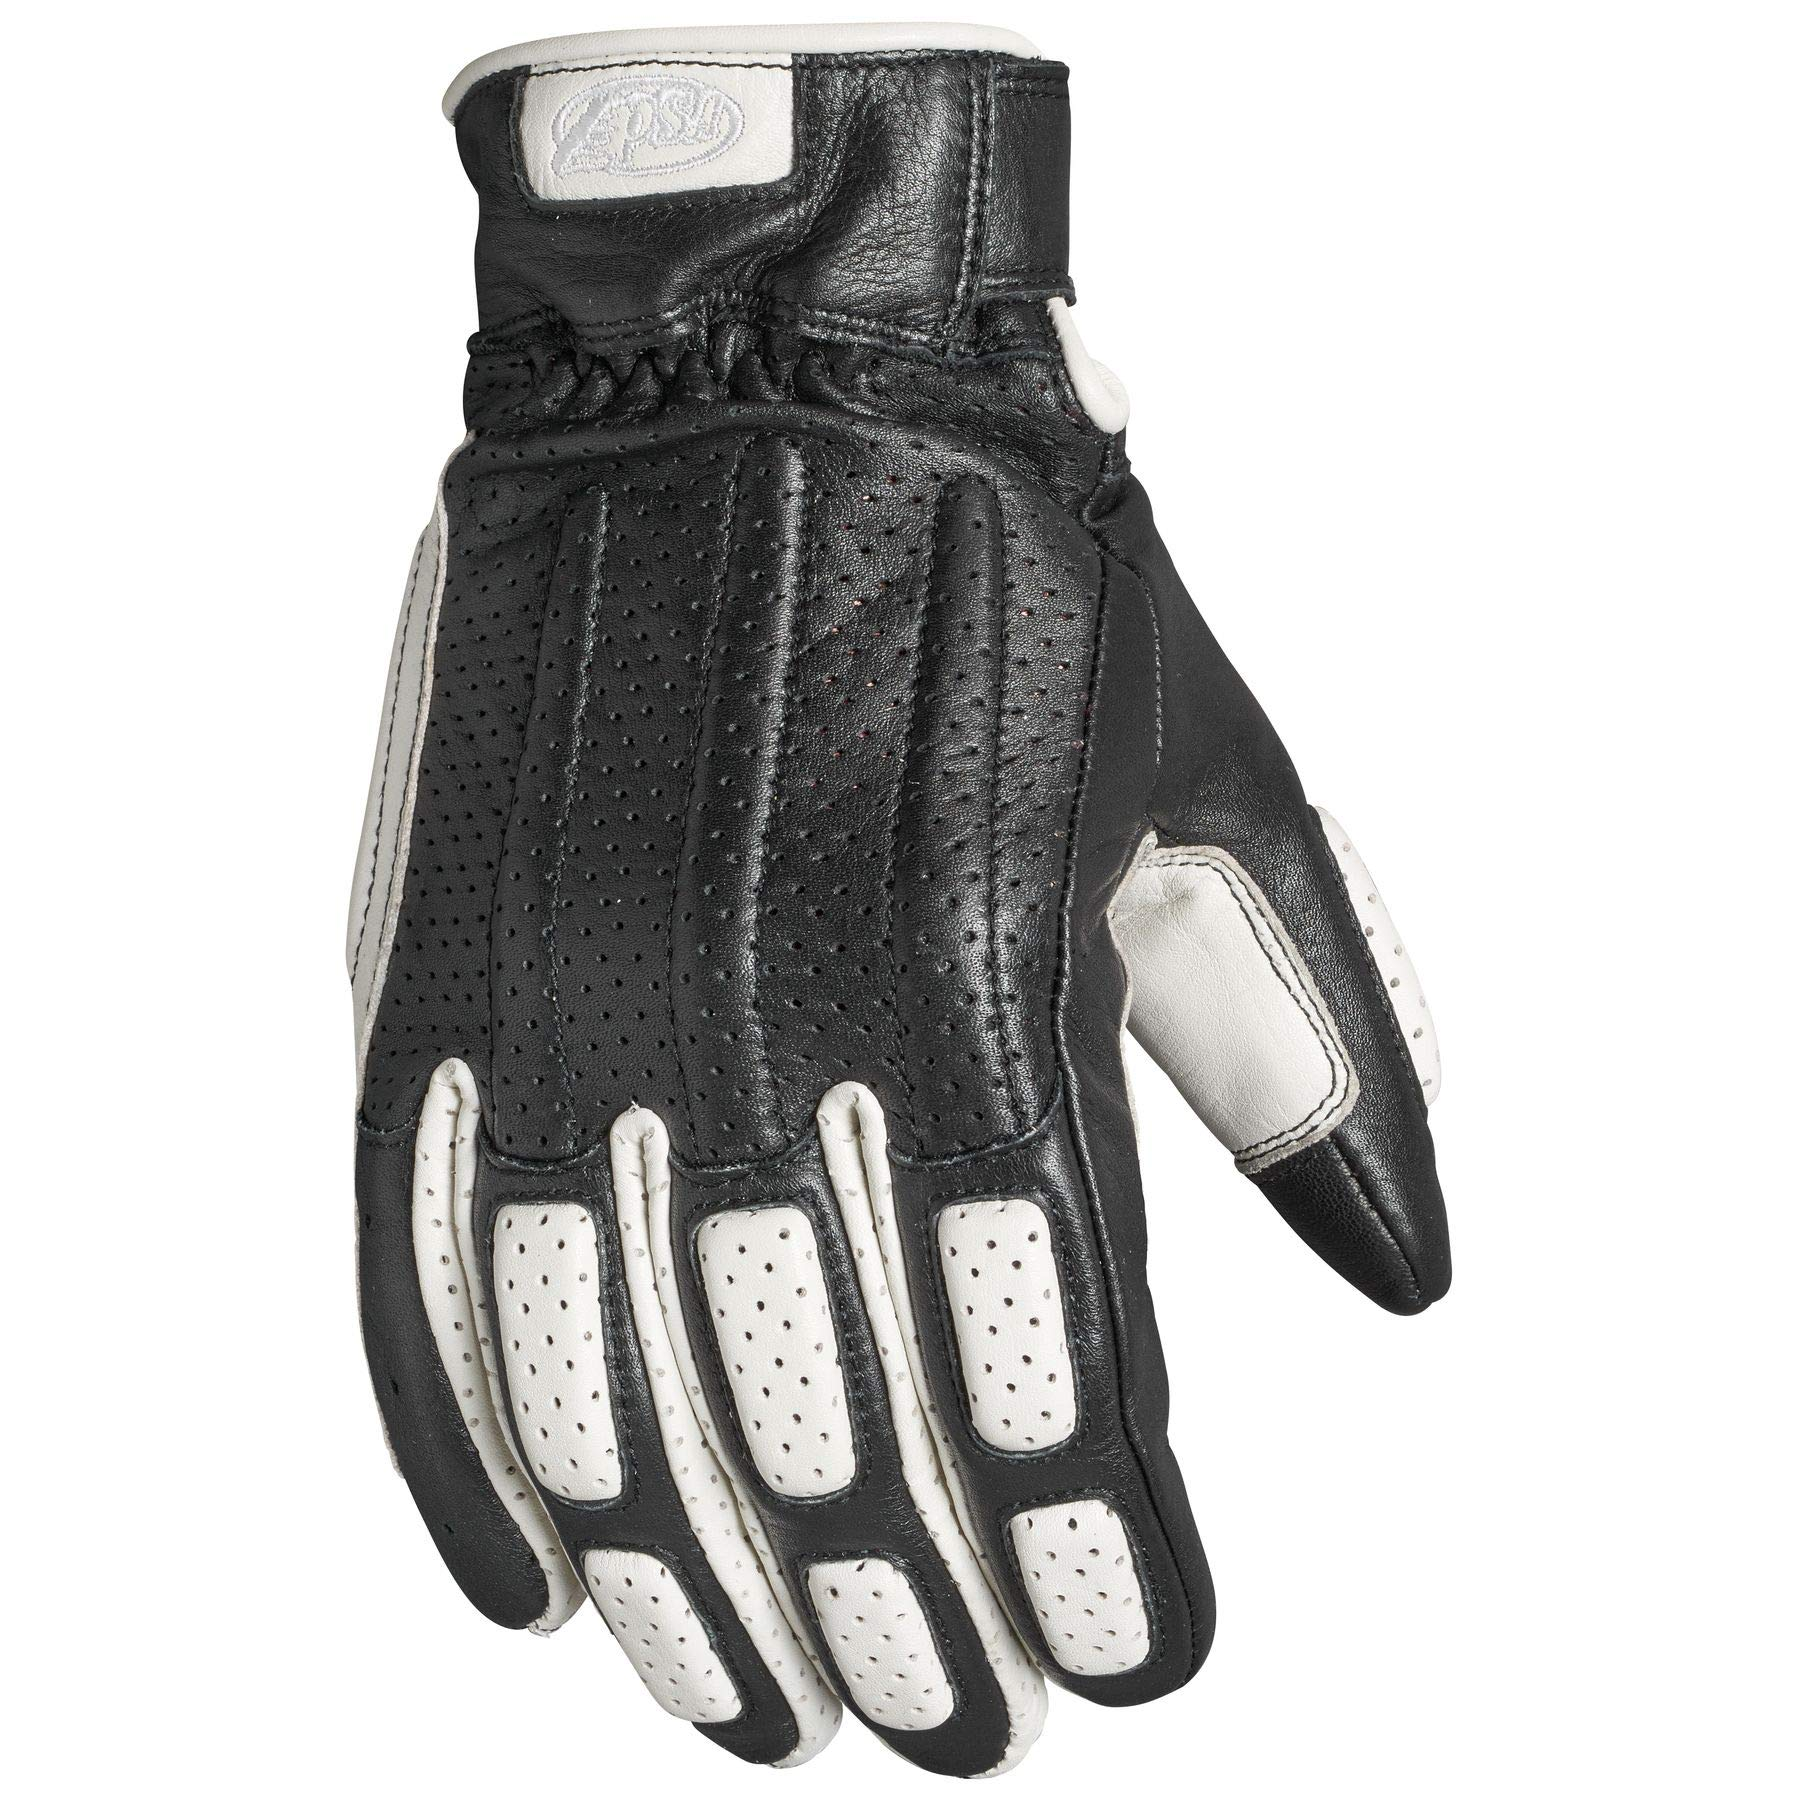 Roland Sands Design Rourke Gloves Black/White 2X-Large (More Size and Color Options)